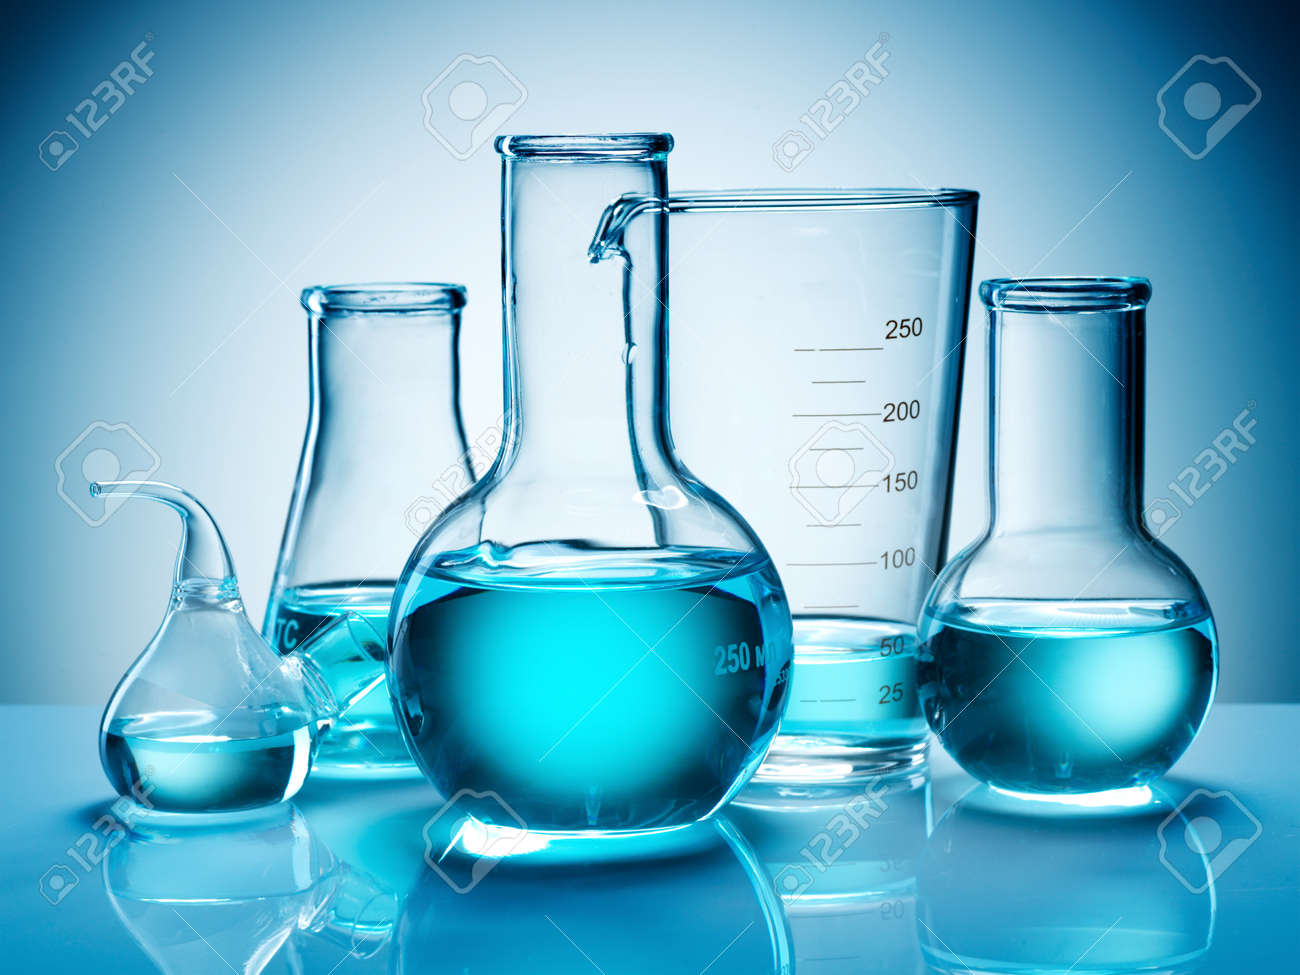 Assorted laboratory glassware equipment ready for an experiment in a science research lab - 7523980